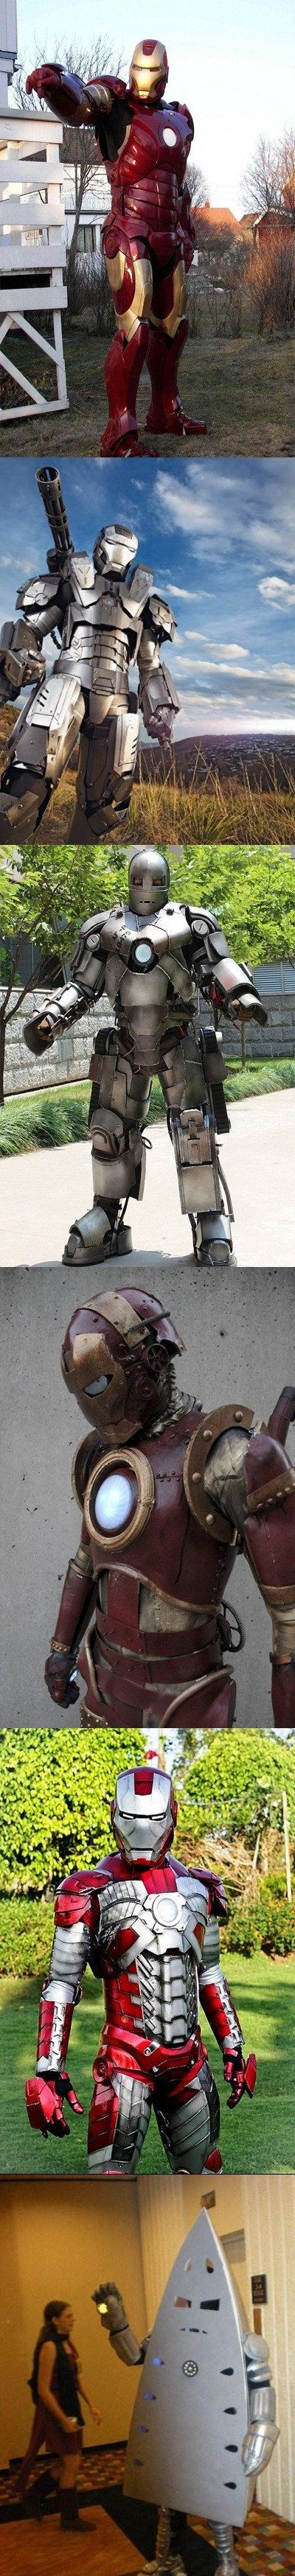 awesome ironman costumes, especially the last one hahaha